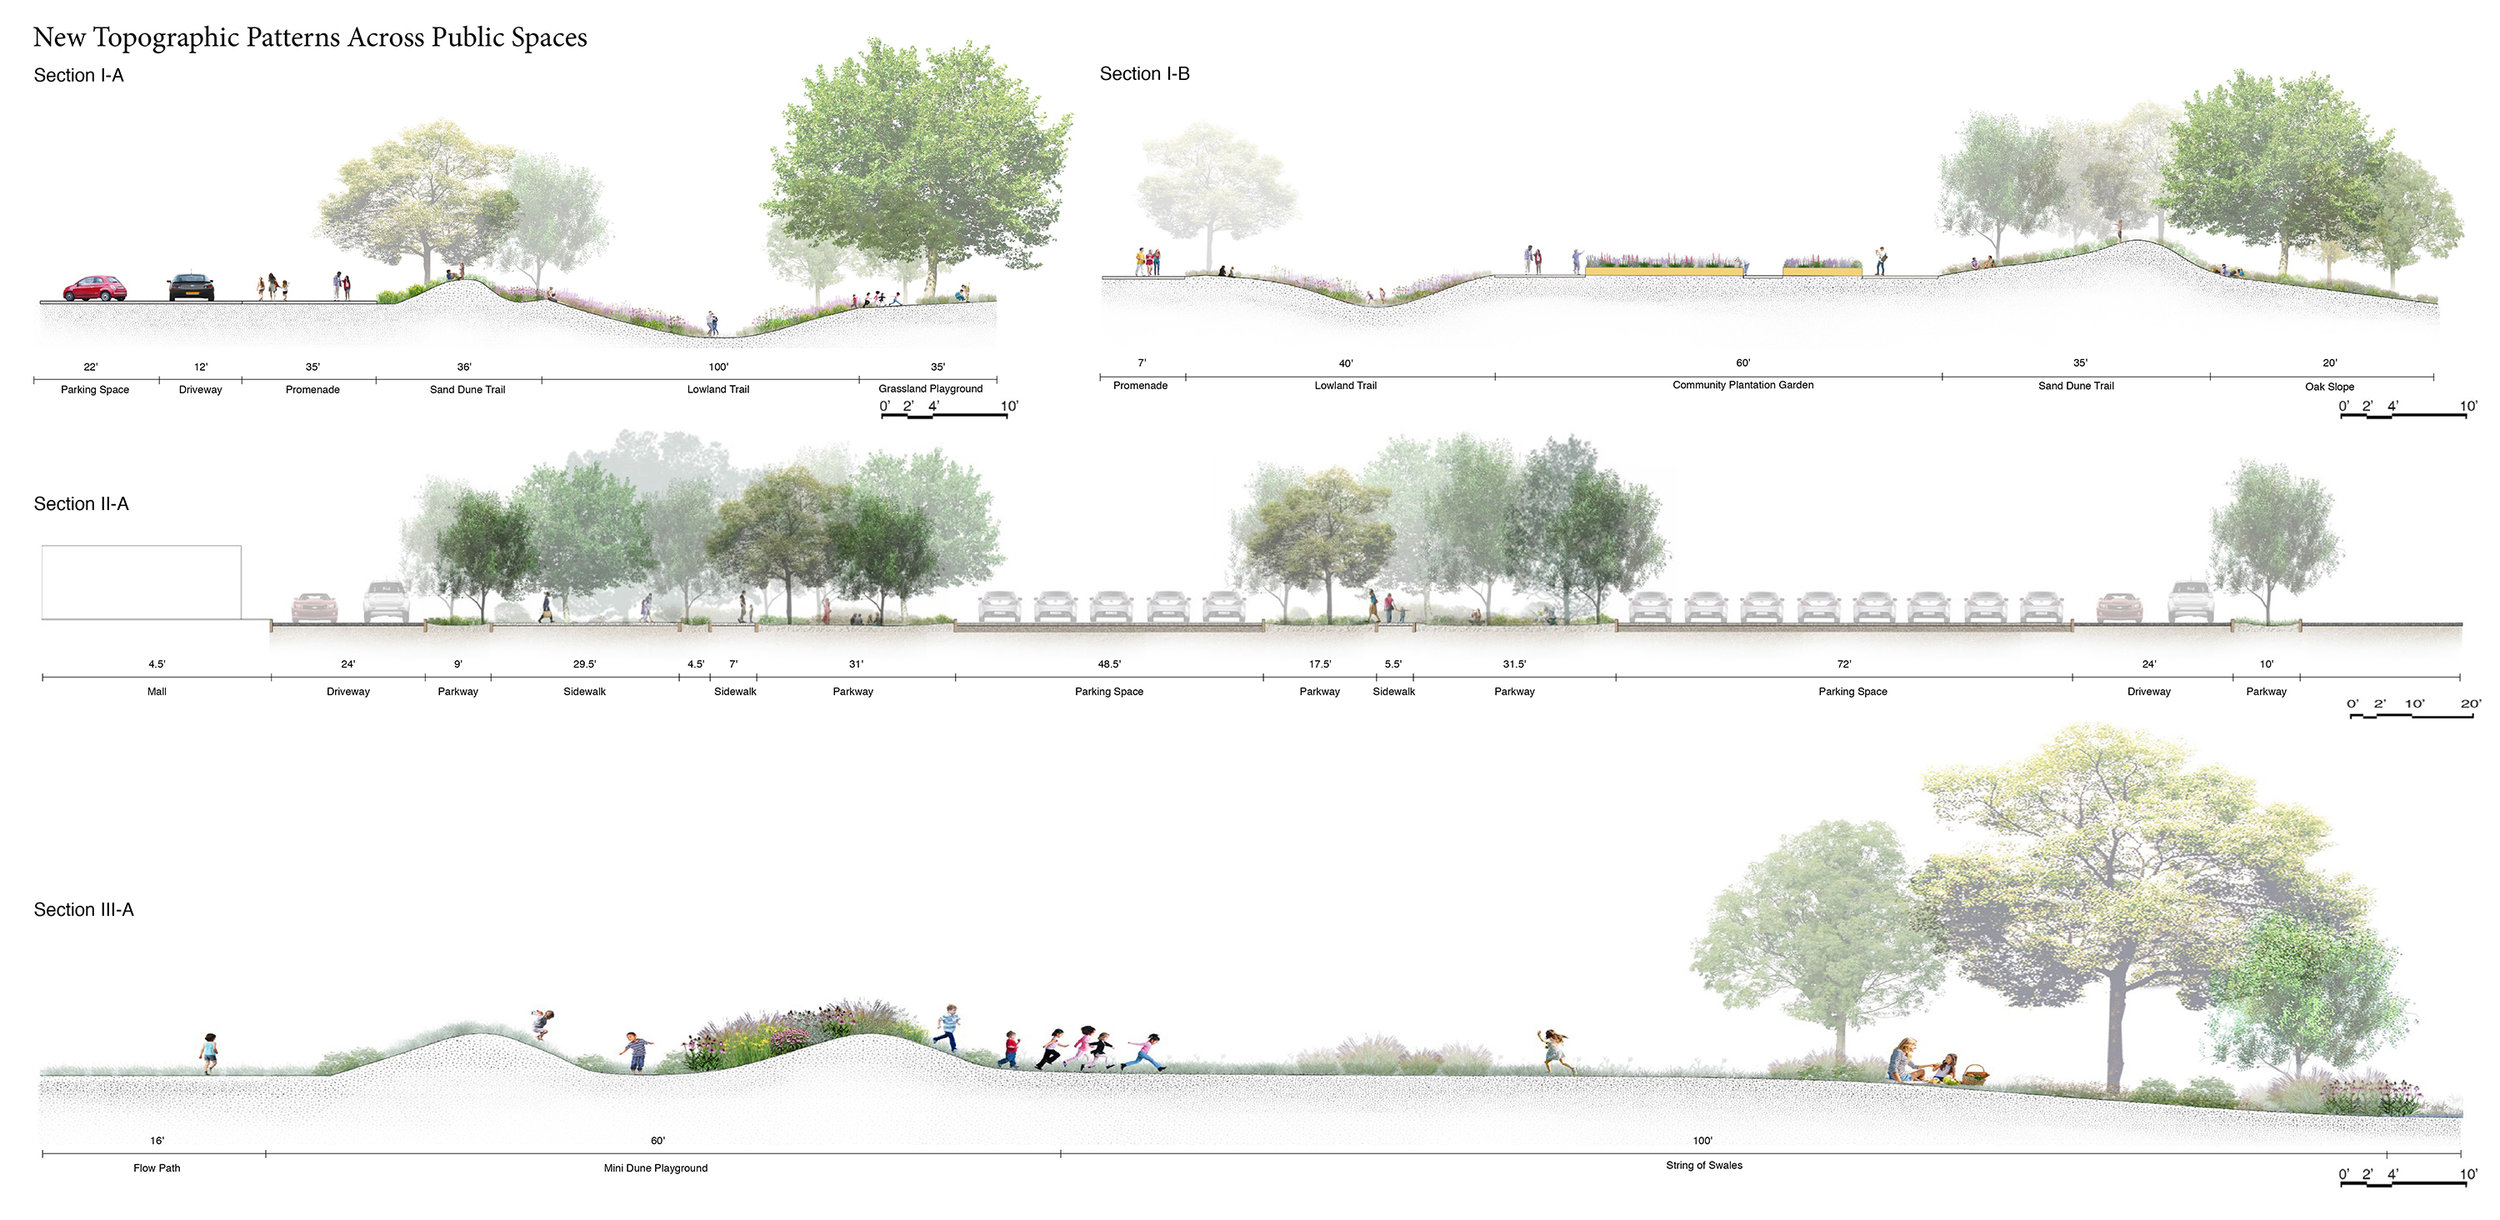 New Topographic Patterns Across Public Spaces: in Section